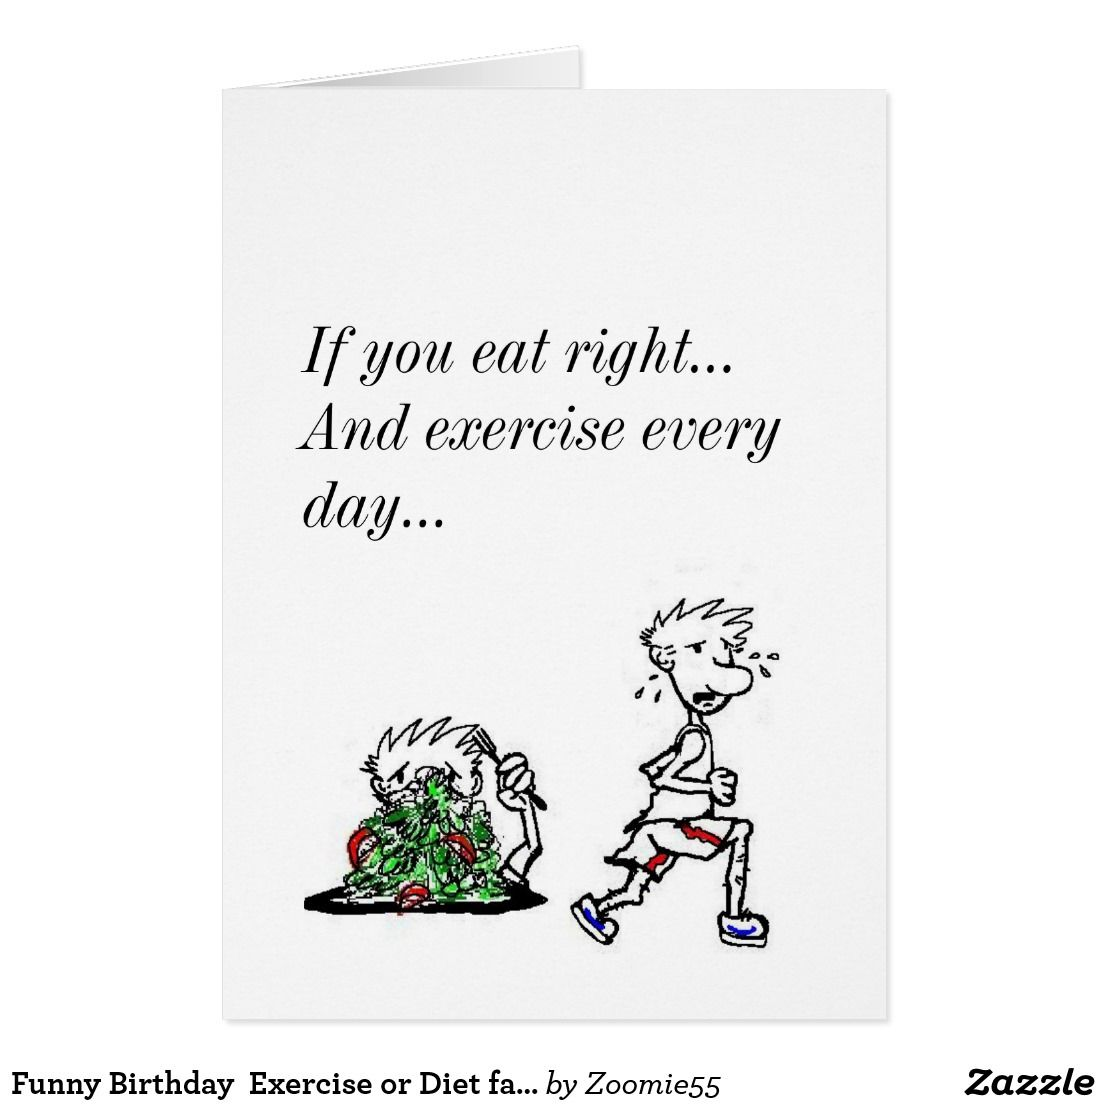 Funny birthday exercise or diet fanatic card funny greeting funny birthday exercise or diet fanatic card kristyandbryce Choice Image